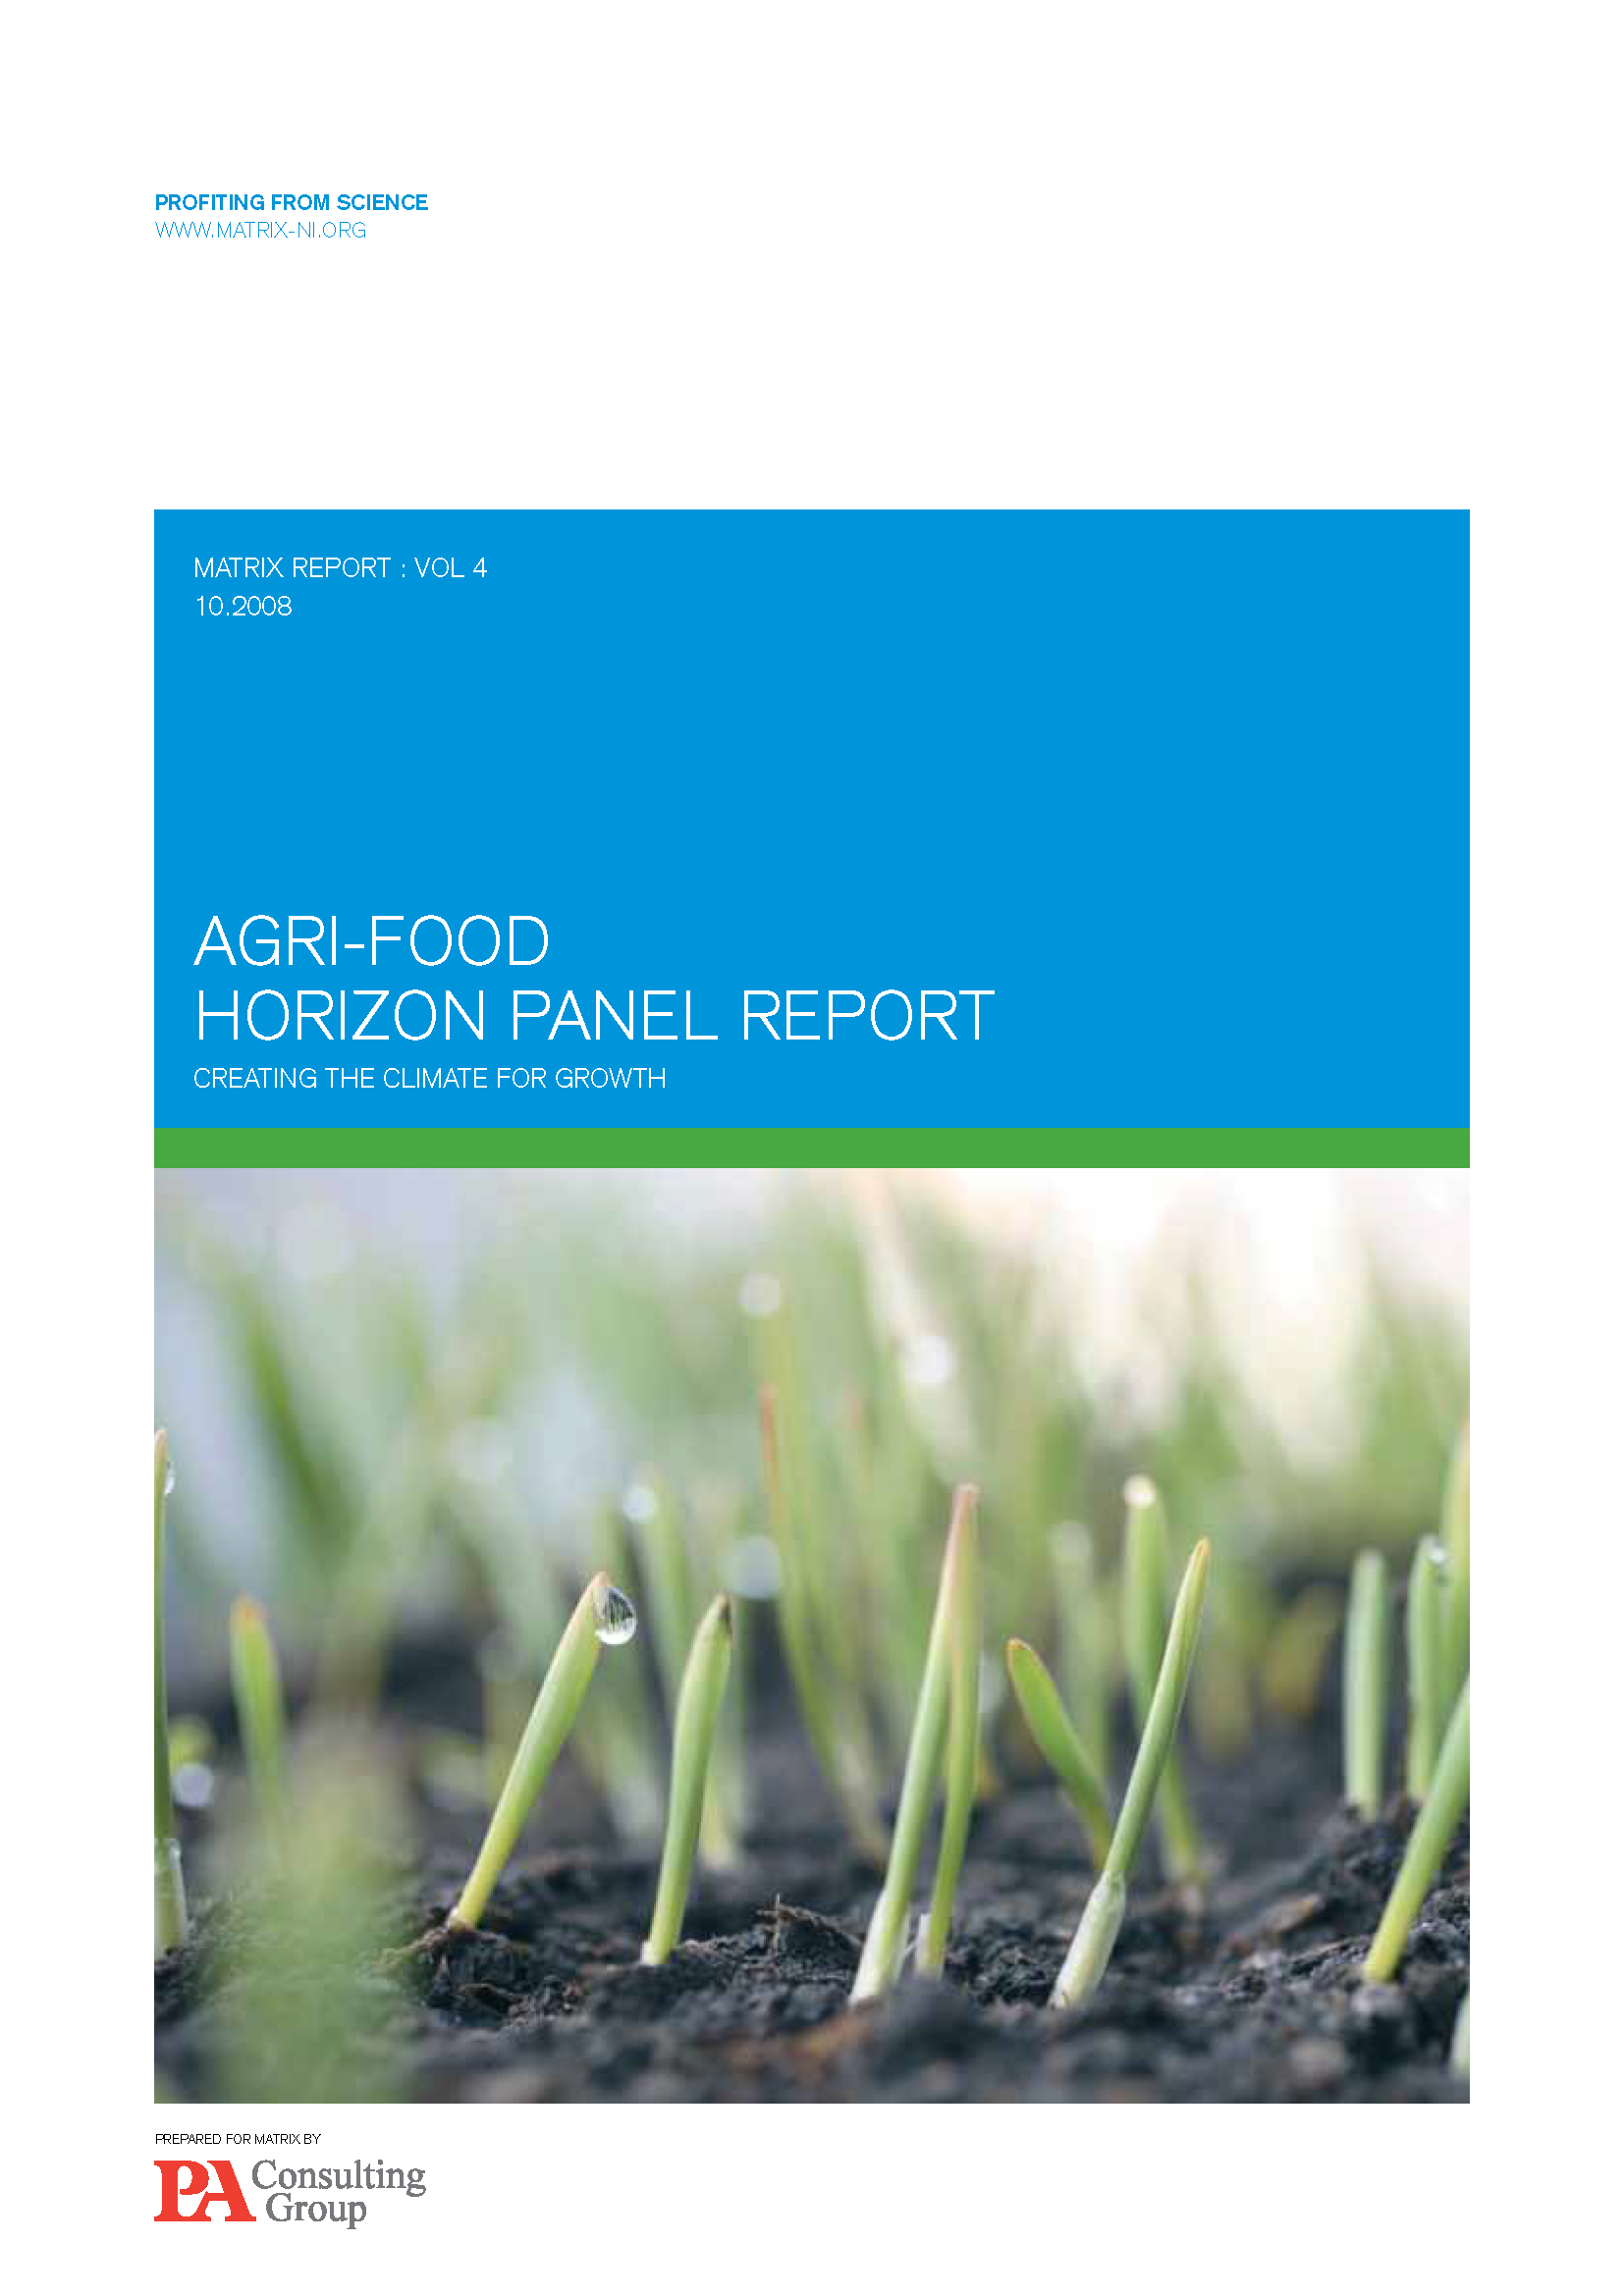 Agri-Food Report 2008